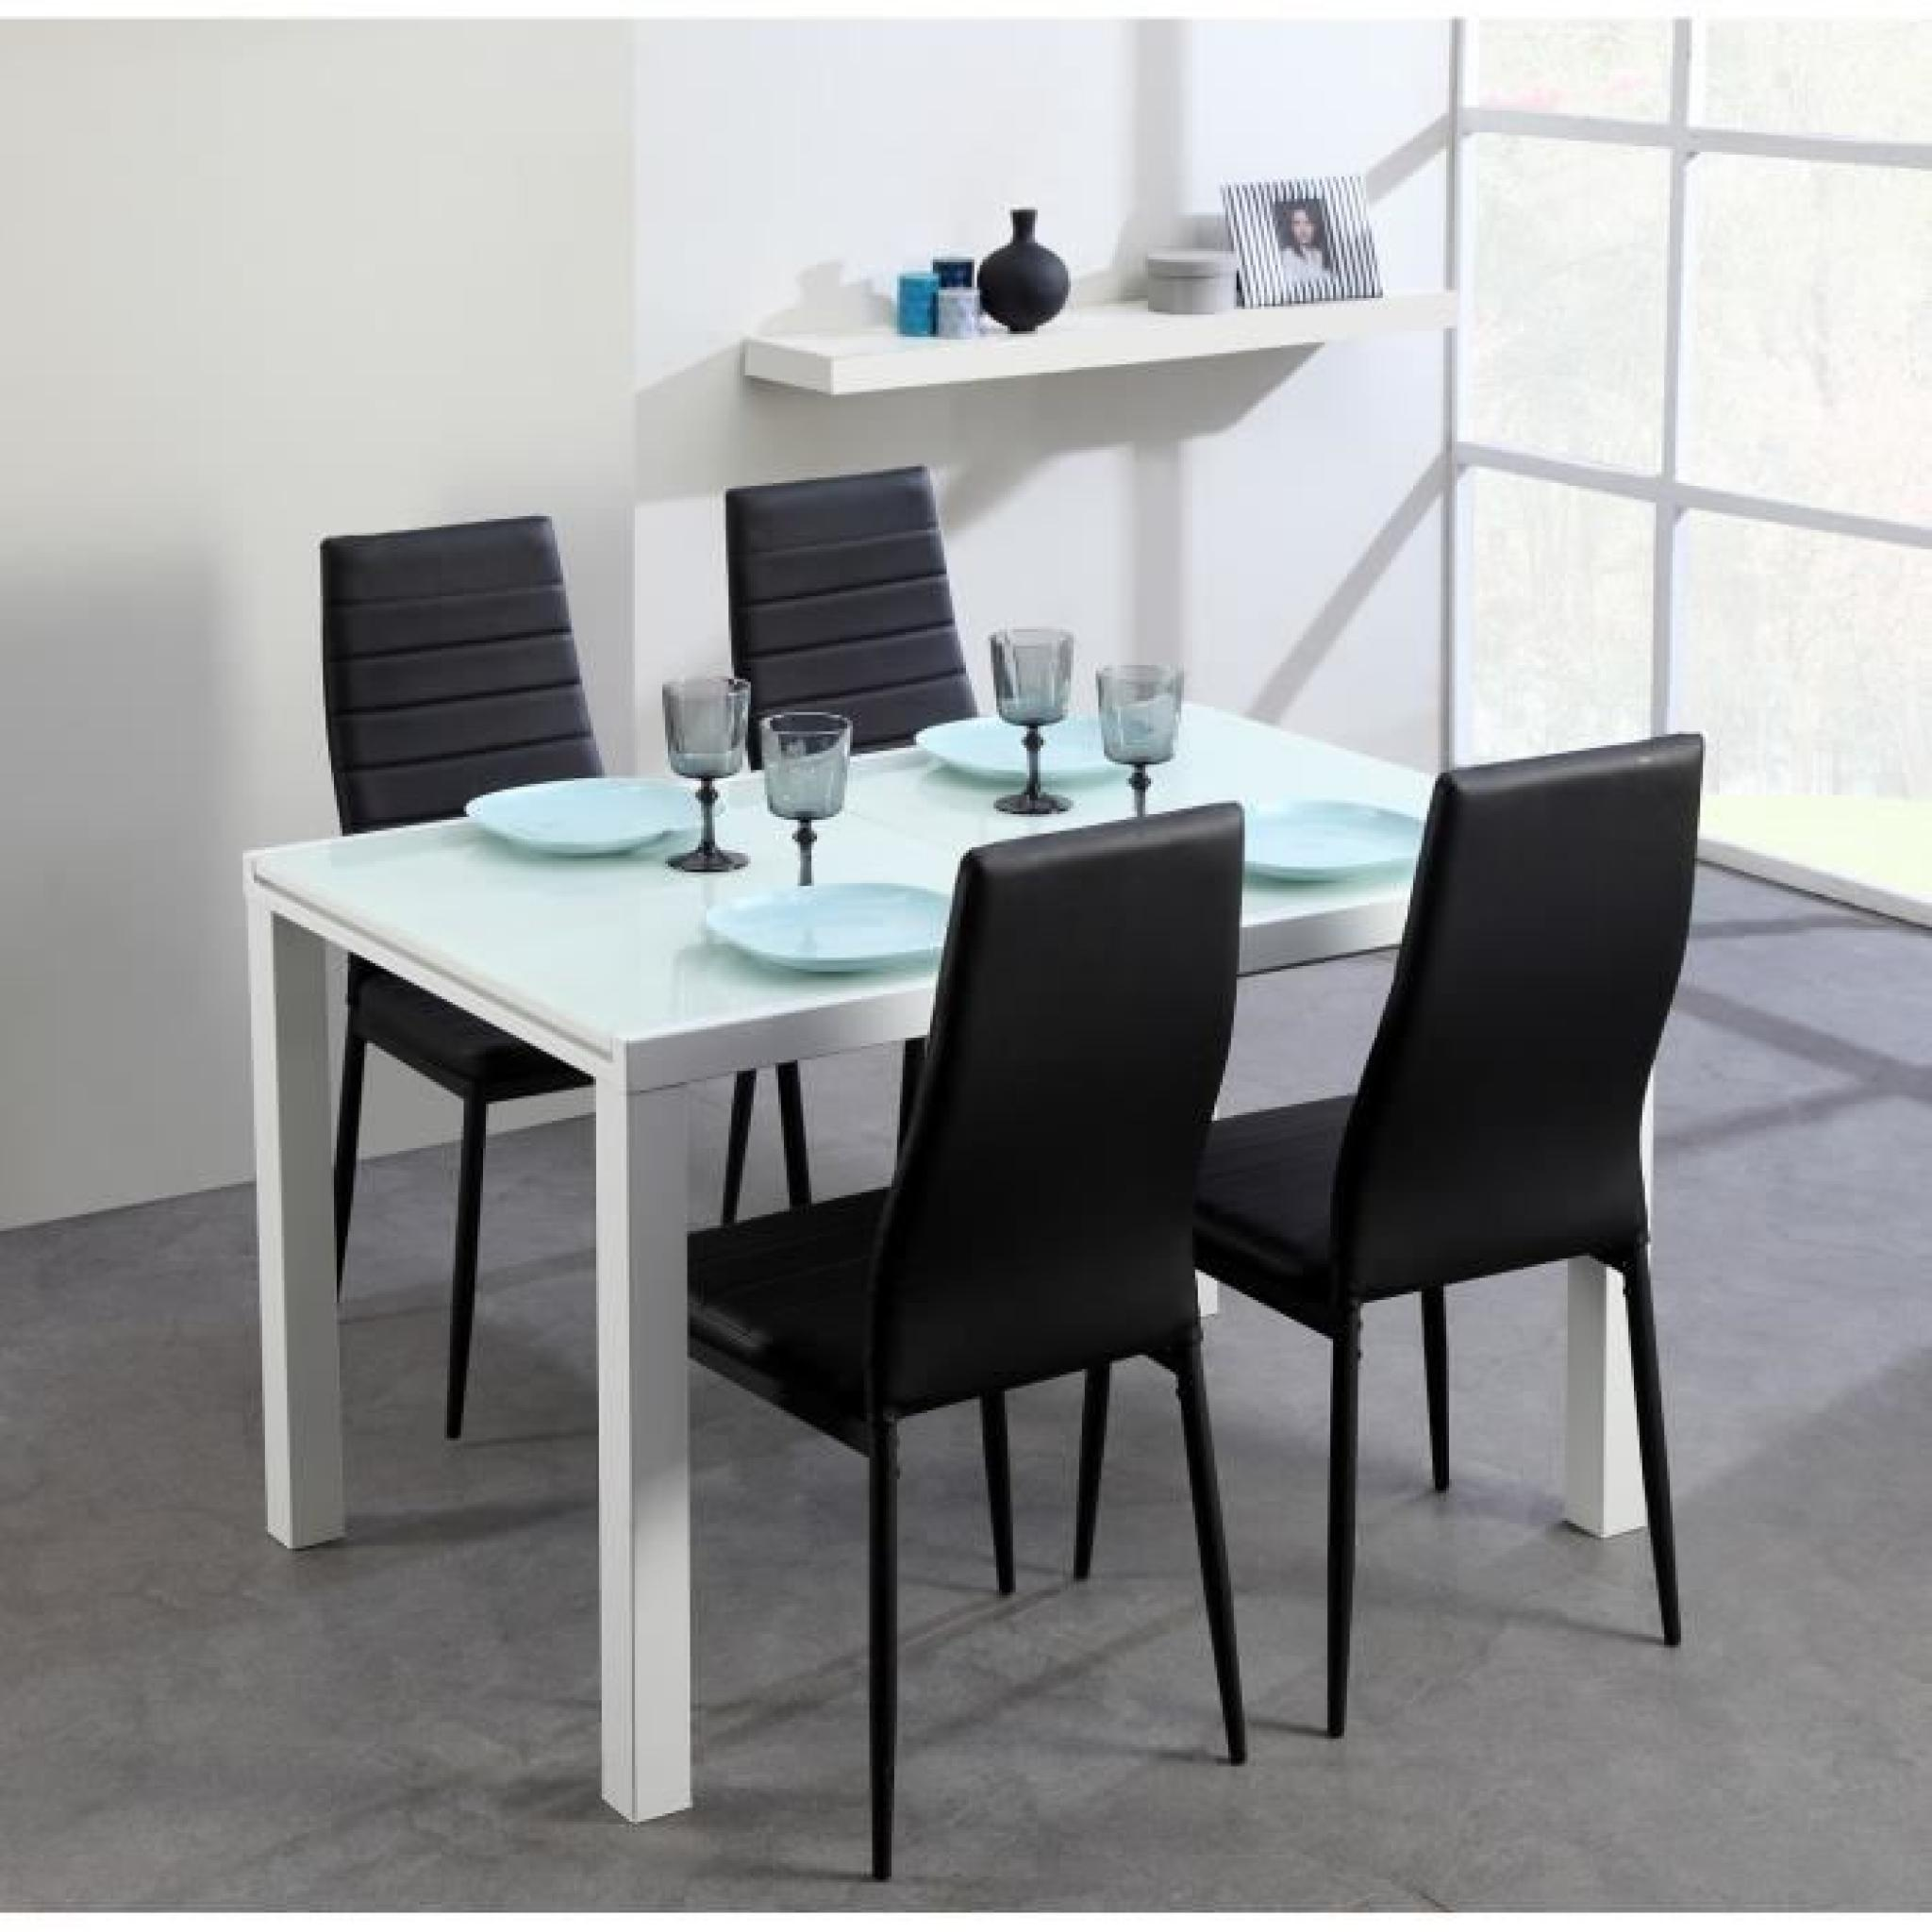 roma table extensible 120 180cm verre blanc achat vente table salle a manger pas cher. Black Bedroom Furniture Sets. Home Design Ideas